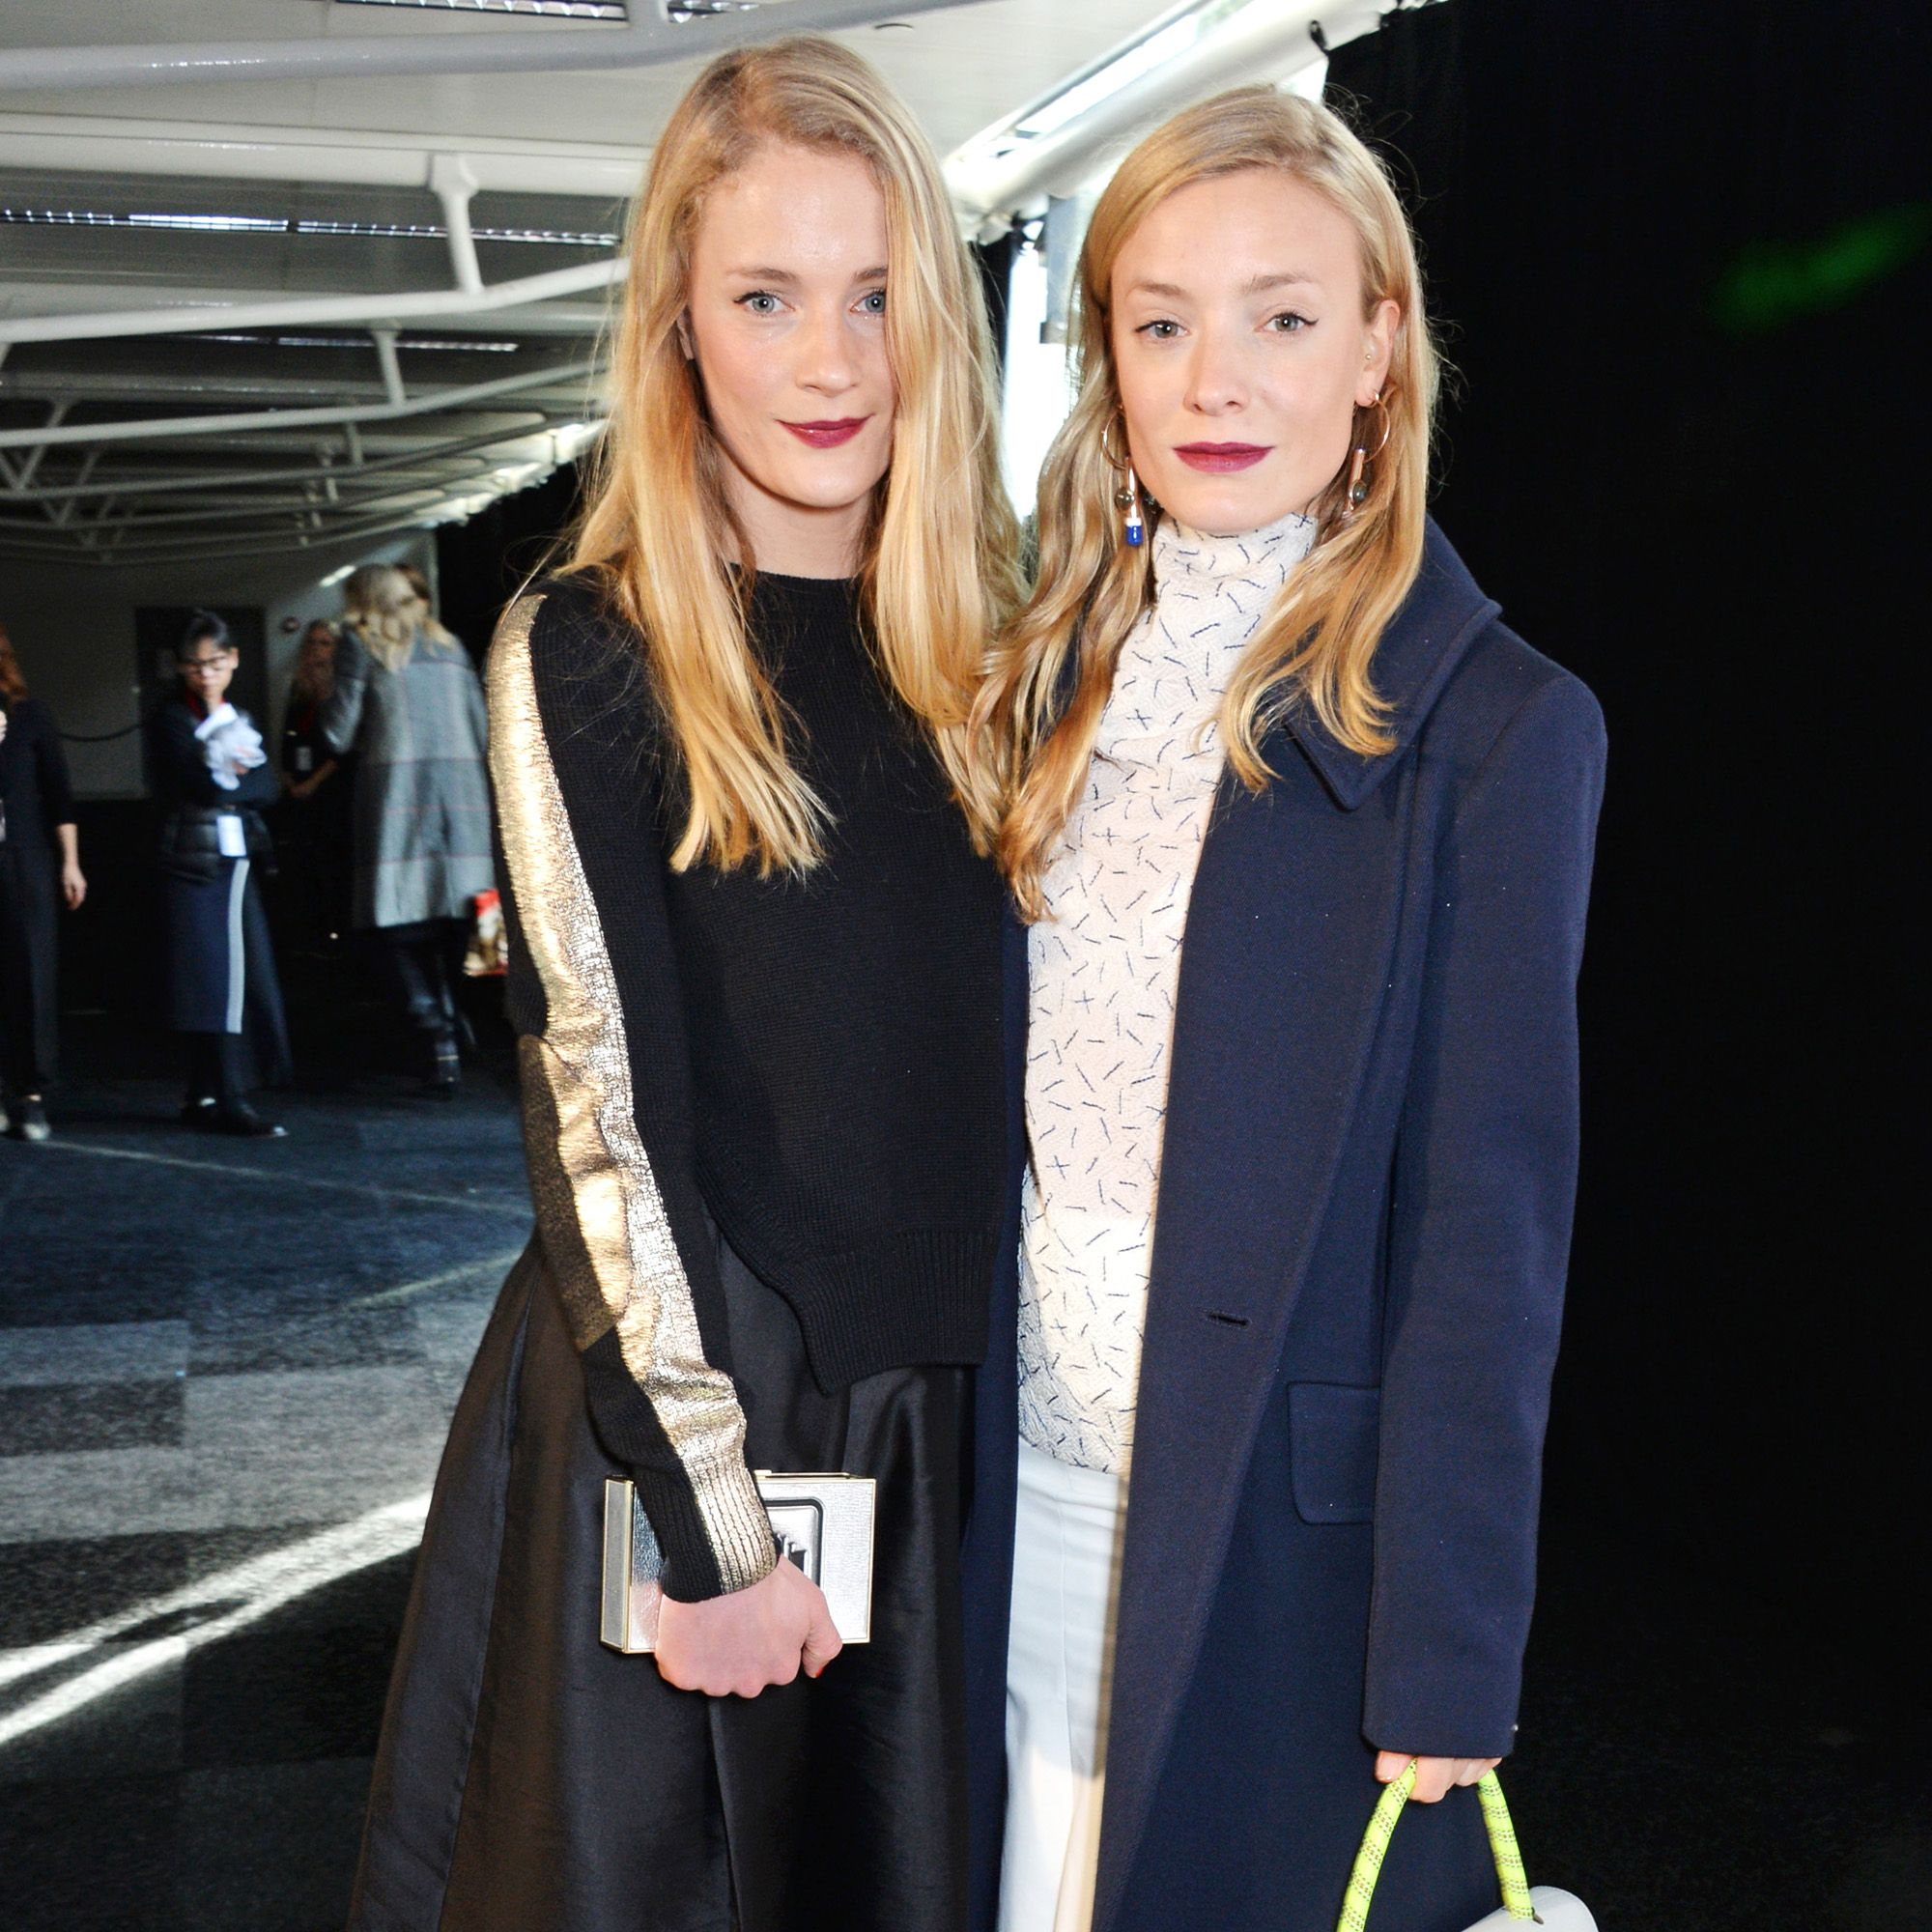 LONDON, ENGLAND - FEBRUARY 24:  Lucy Foley (L) and Kate Foley attend the Anya Hindmarch AW15 Presentation during London Fashion Week at Old Billingsgate Market on February 24, 2015 in London, England.  (Photo by David M. Benett/Getty Images for Anya Hindmarch)